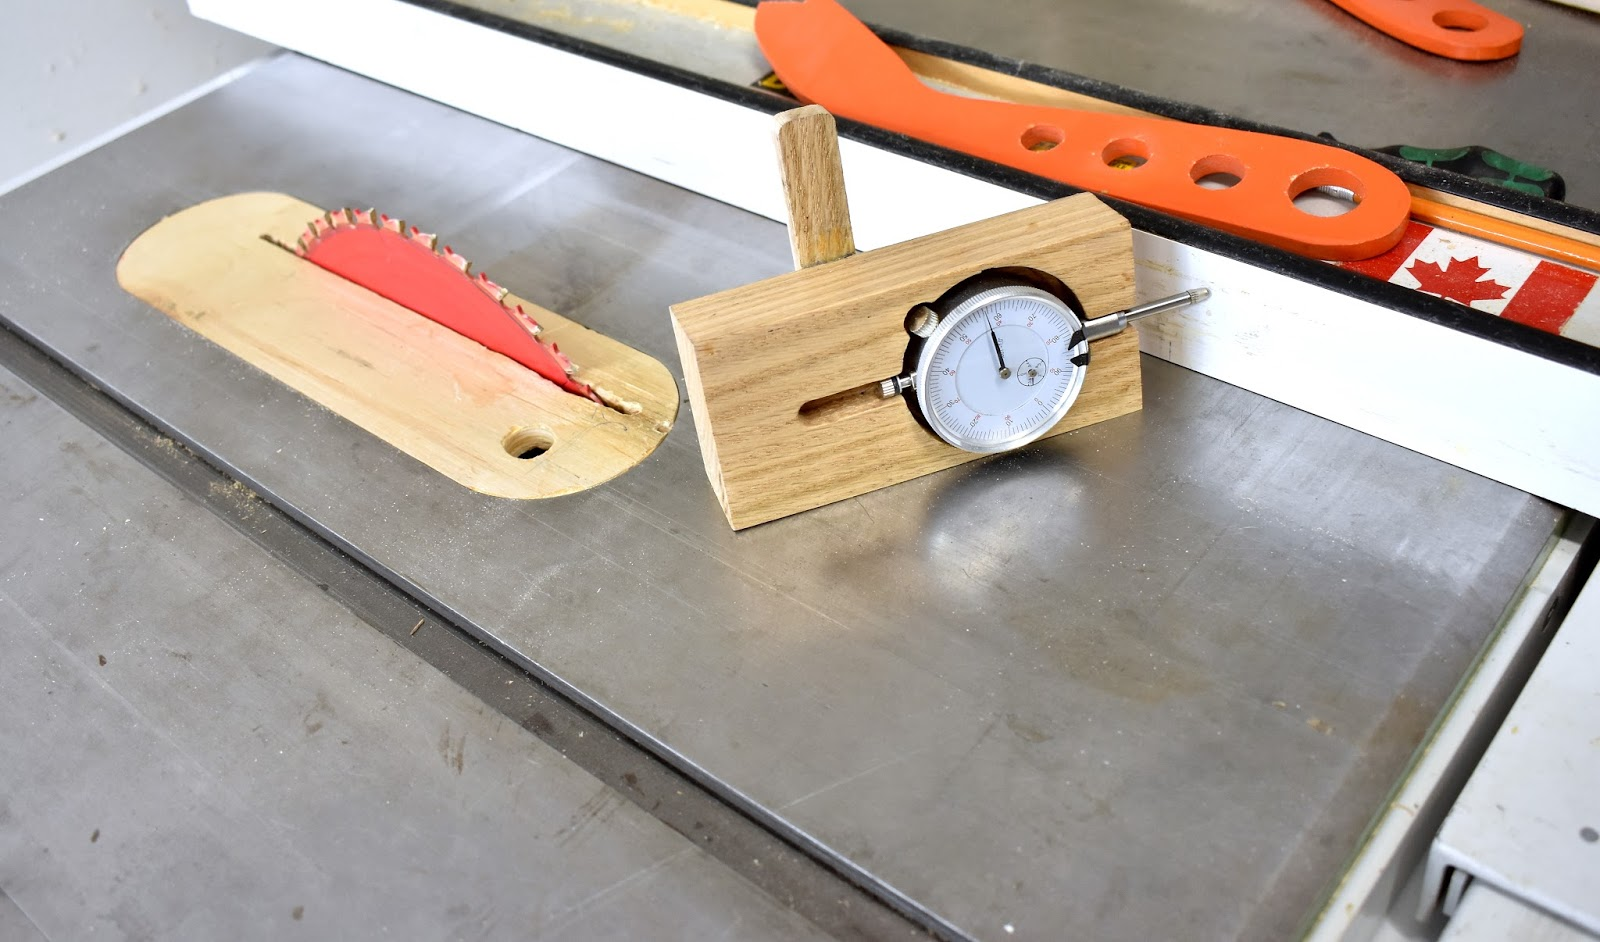 Jax Design Table Saw Fence And Blade Micro Adjustment Jig